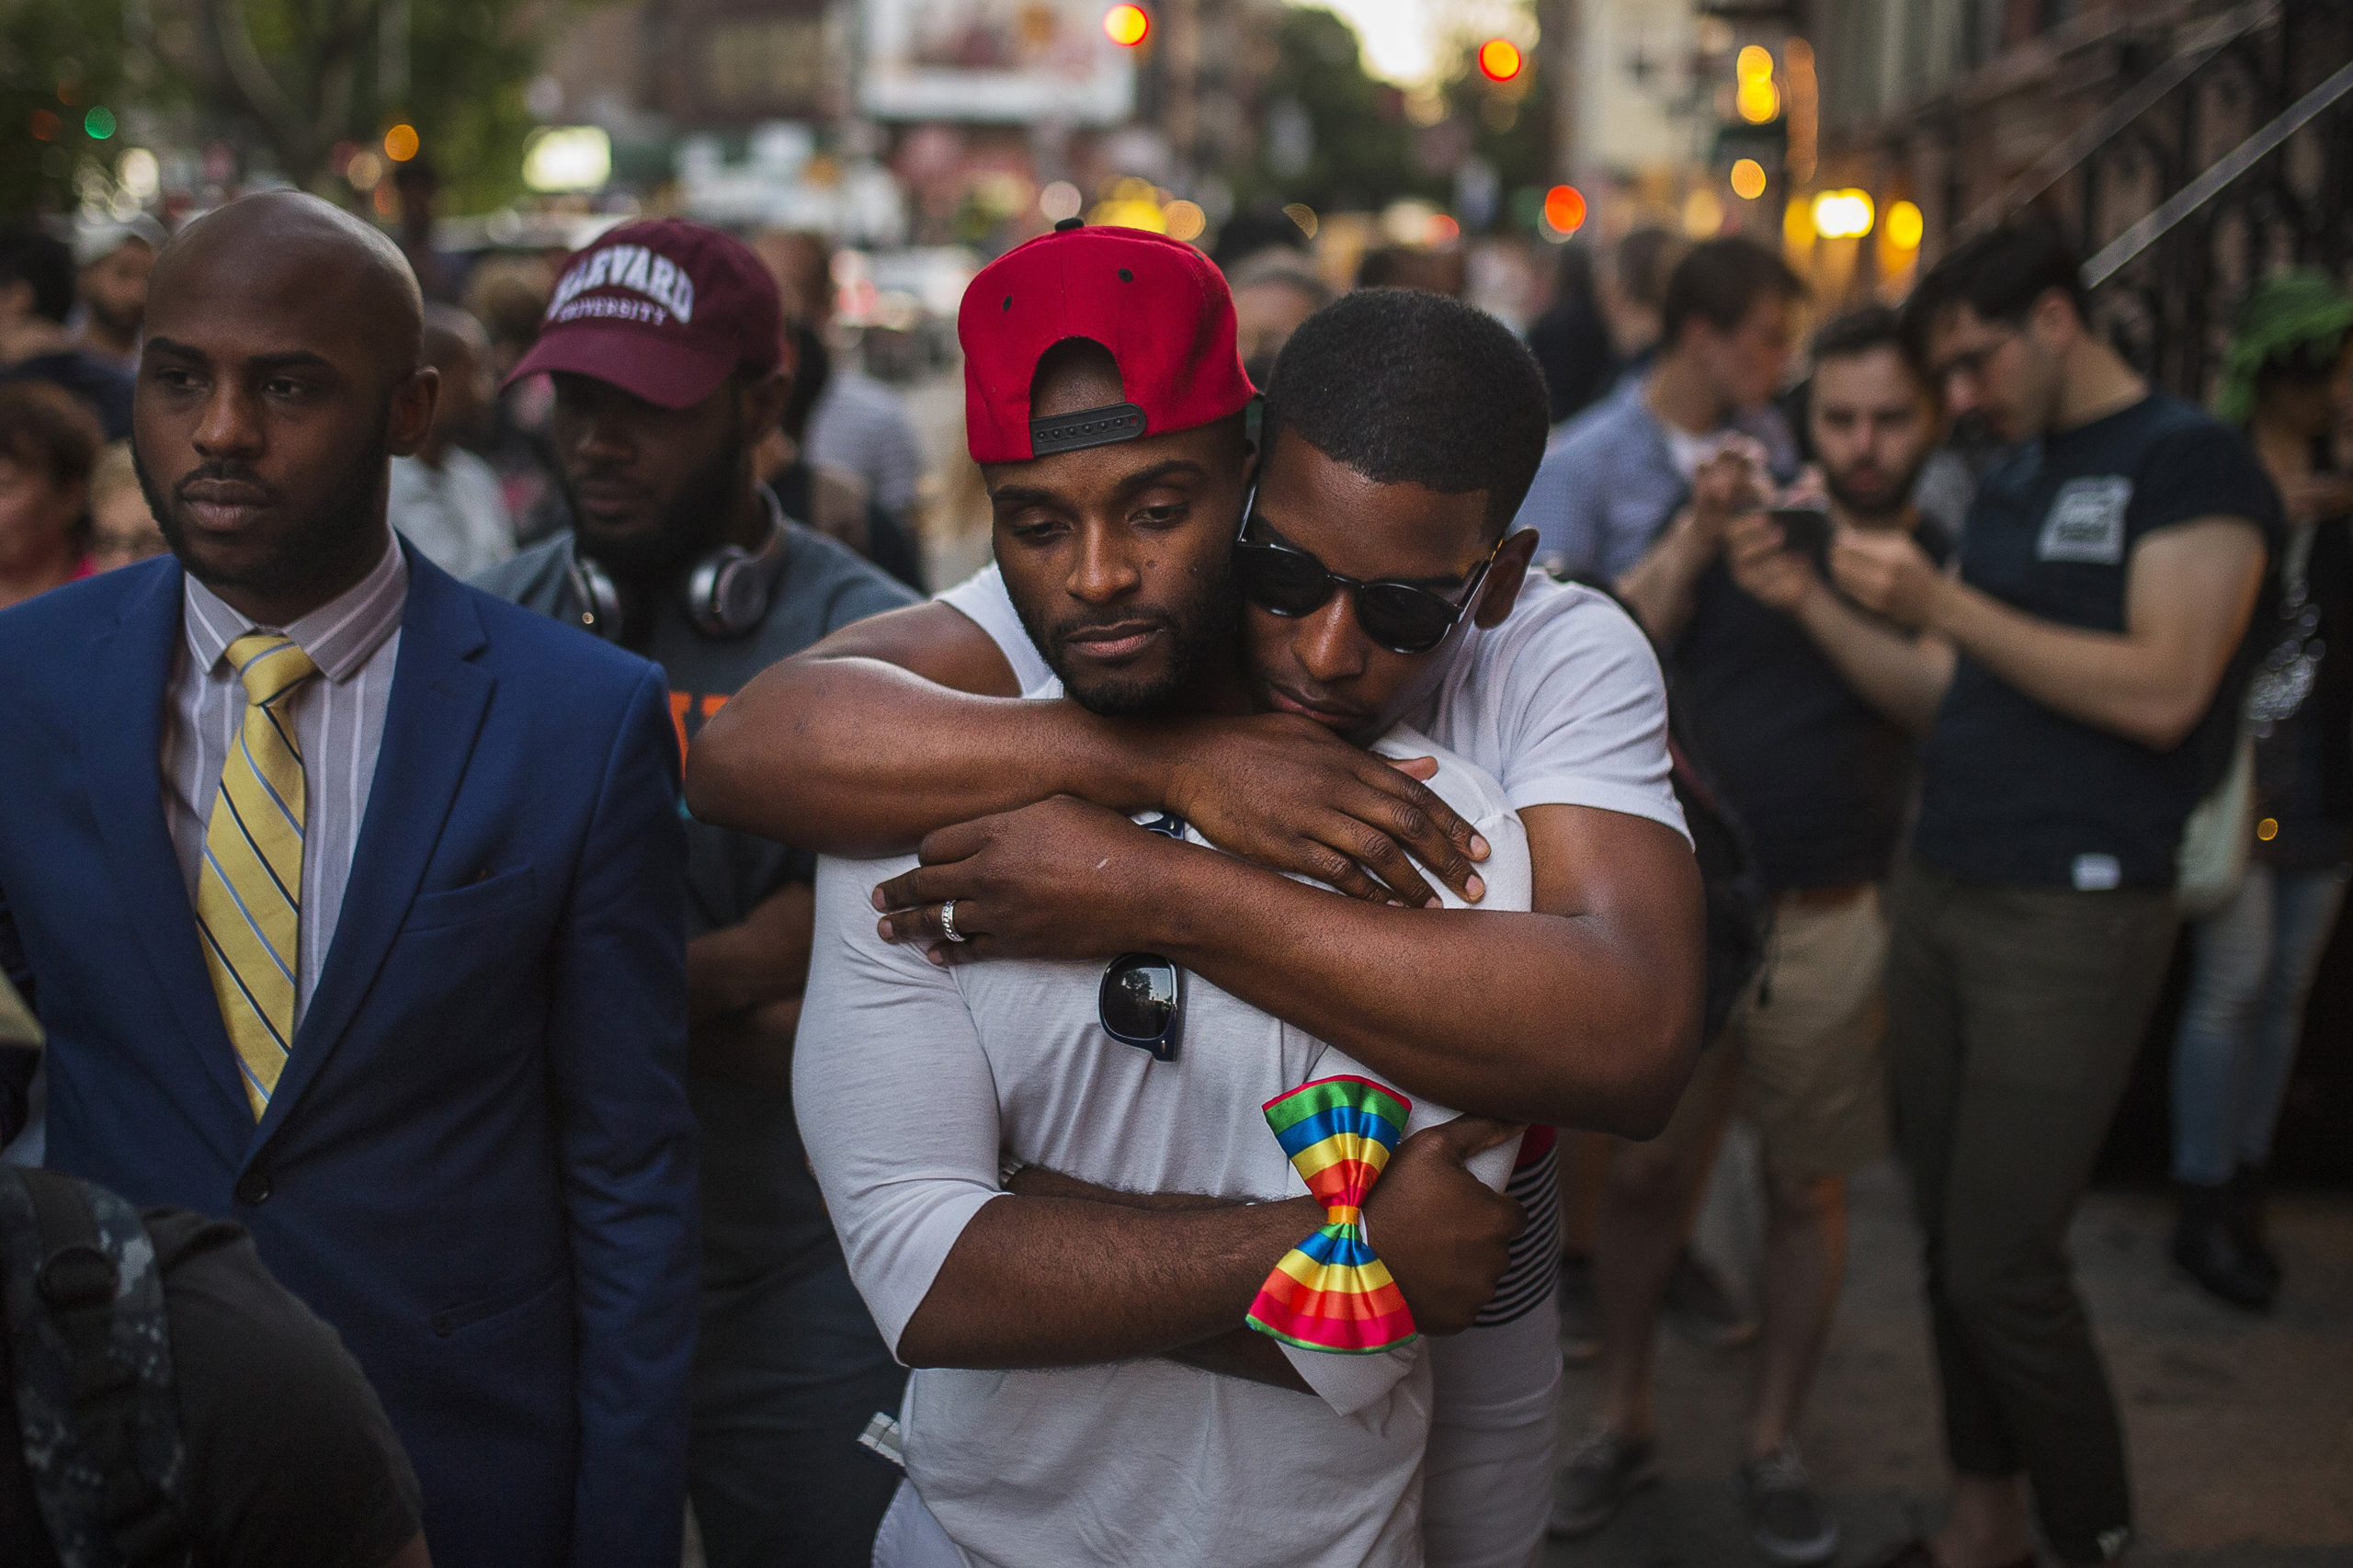 A couple embraces as people gather in front of a makeshift memorial to the victims of a mass shooting at a gay nightclub in Orlando, in New York City on June 12, 2016.